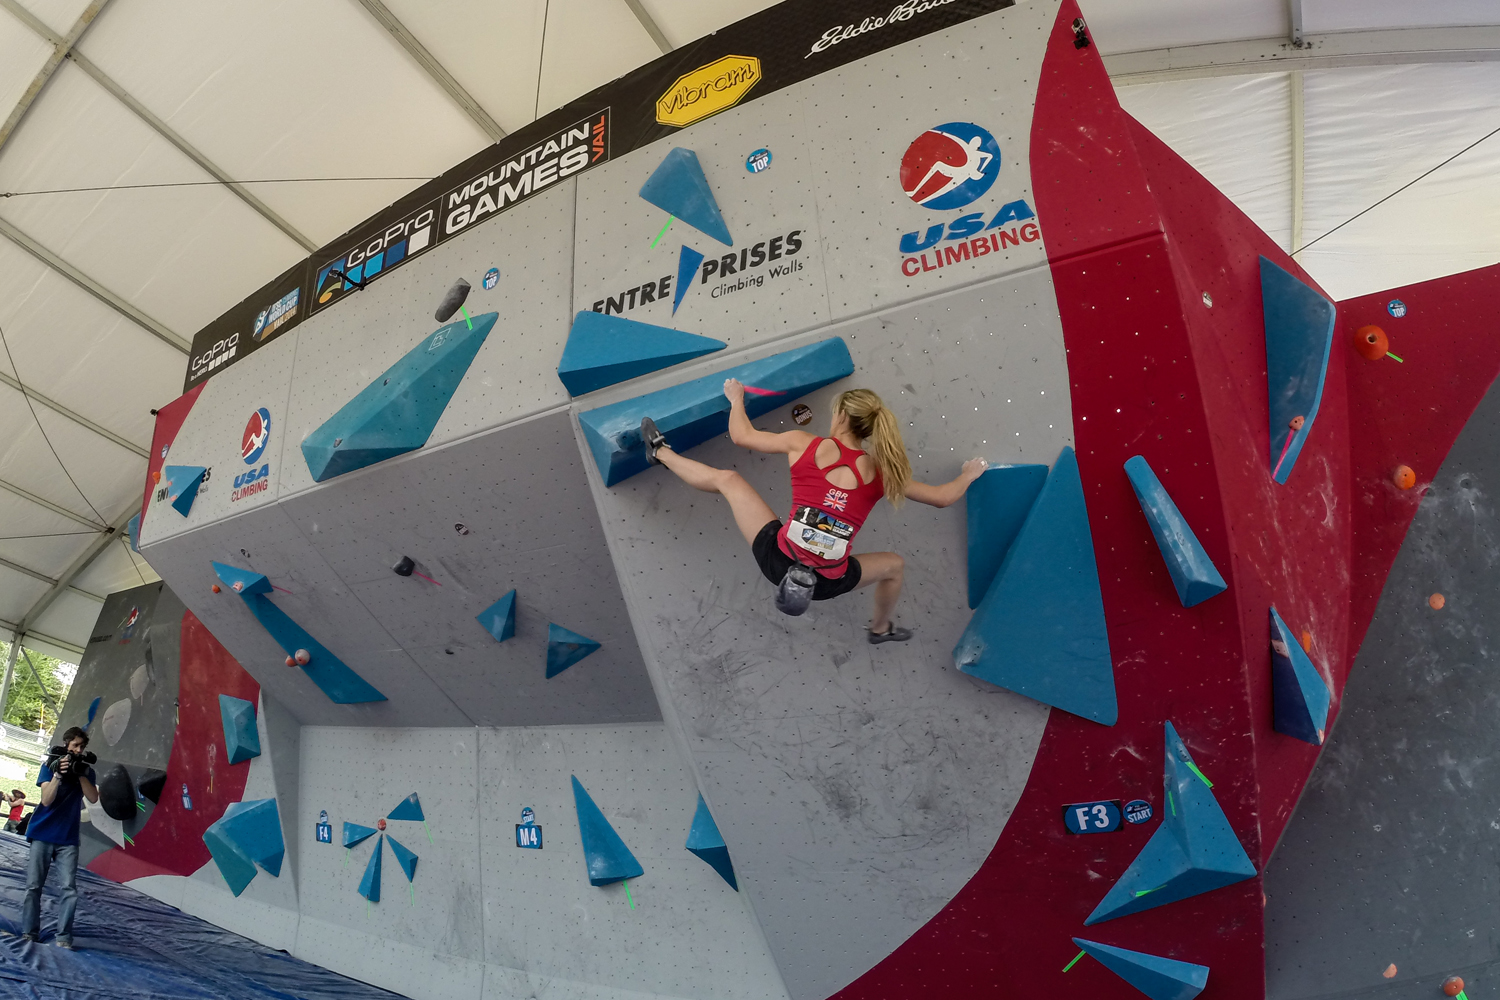 Climbers in the IFSC Bouldering World Cup ascended up the mountain wall in Vail, but it was Akiyo Noguchi of Japan who upset three-time champion Anna Stoher of Austria for the first place spot.